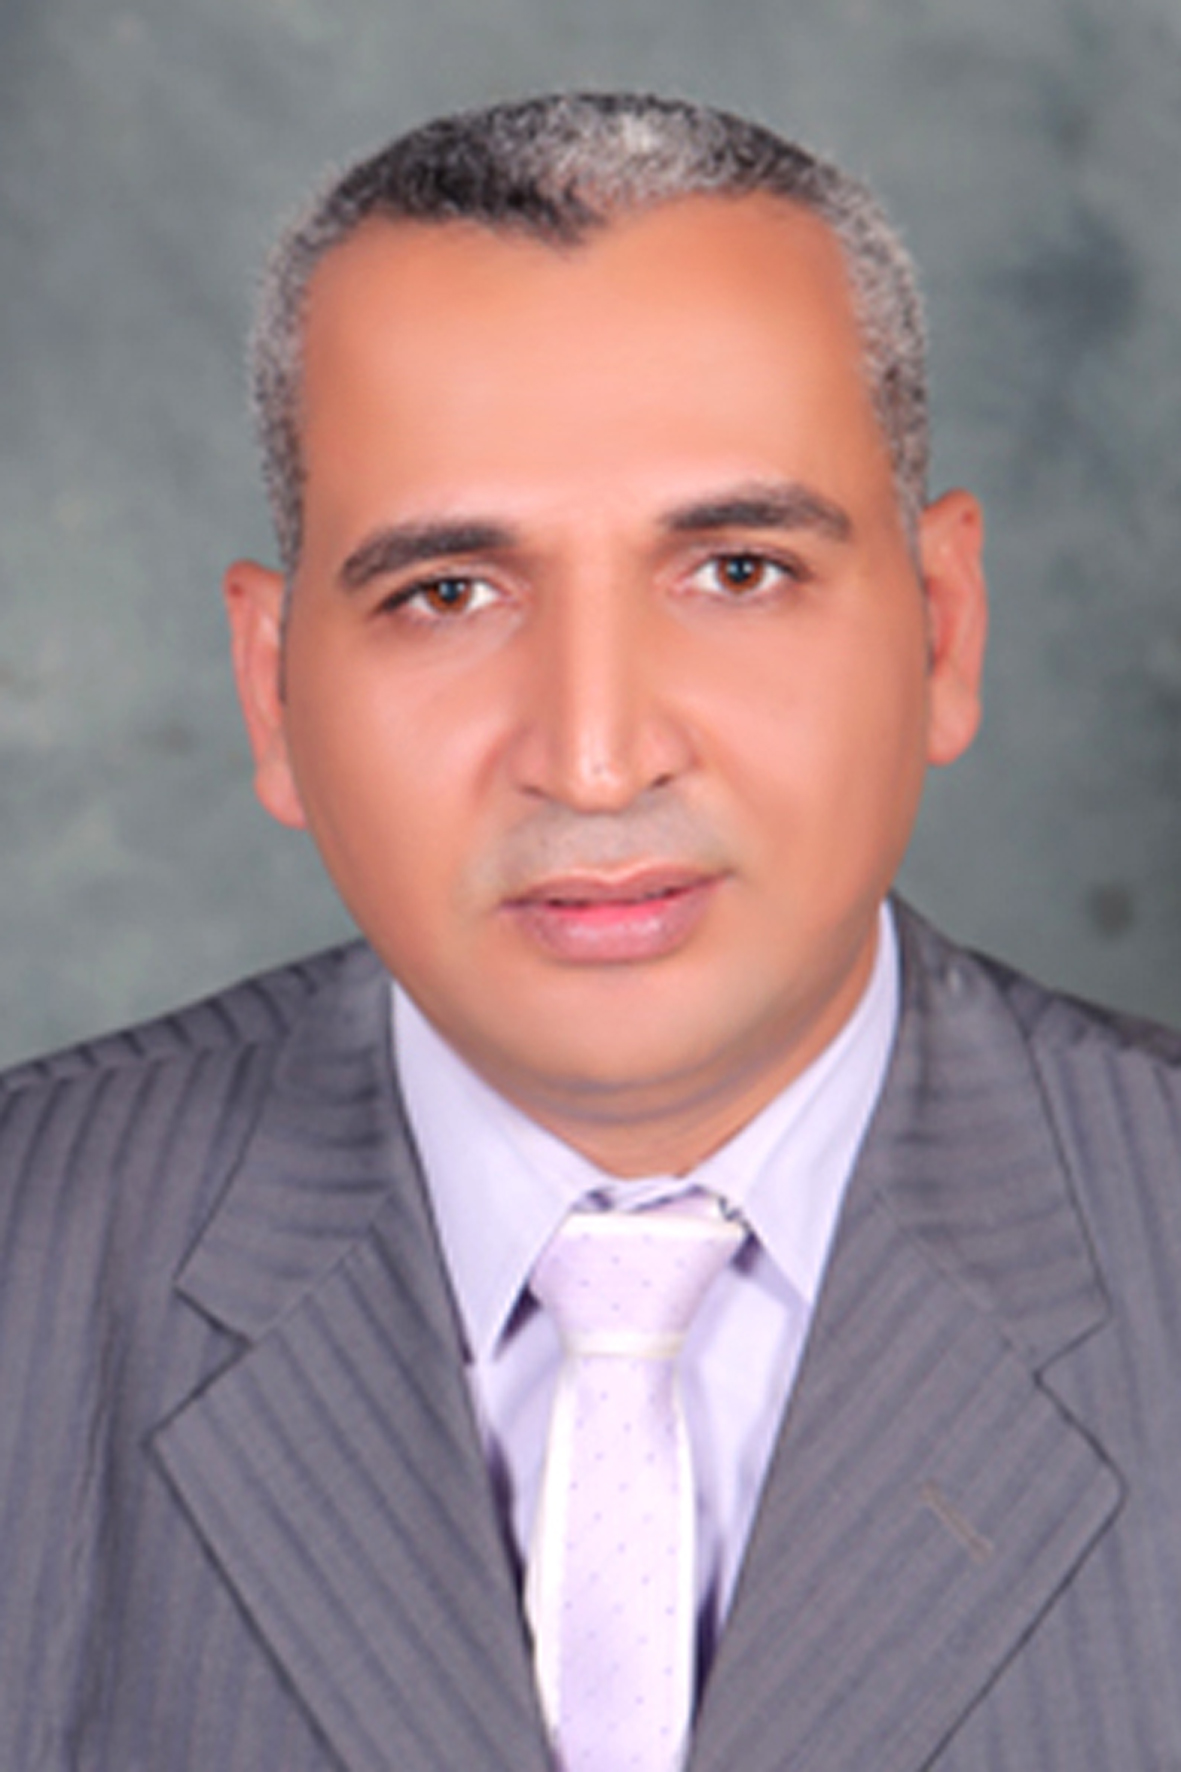 Mohamed El-Demerdash